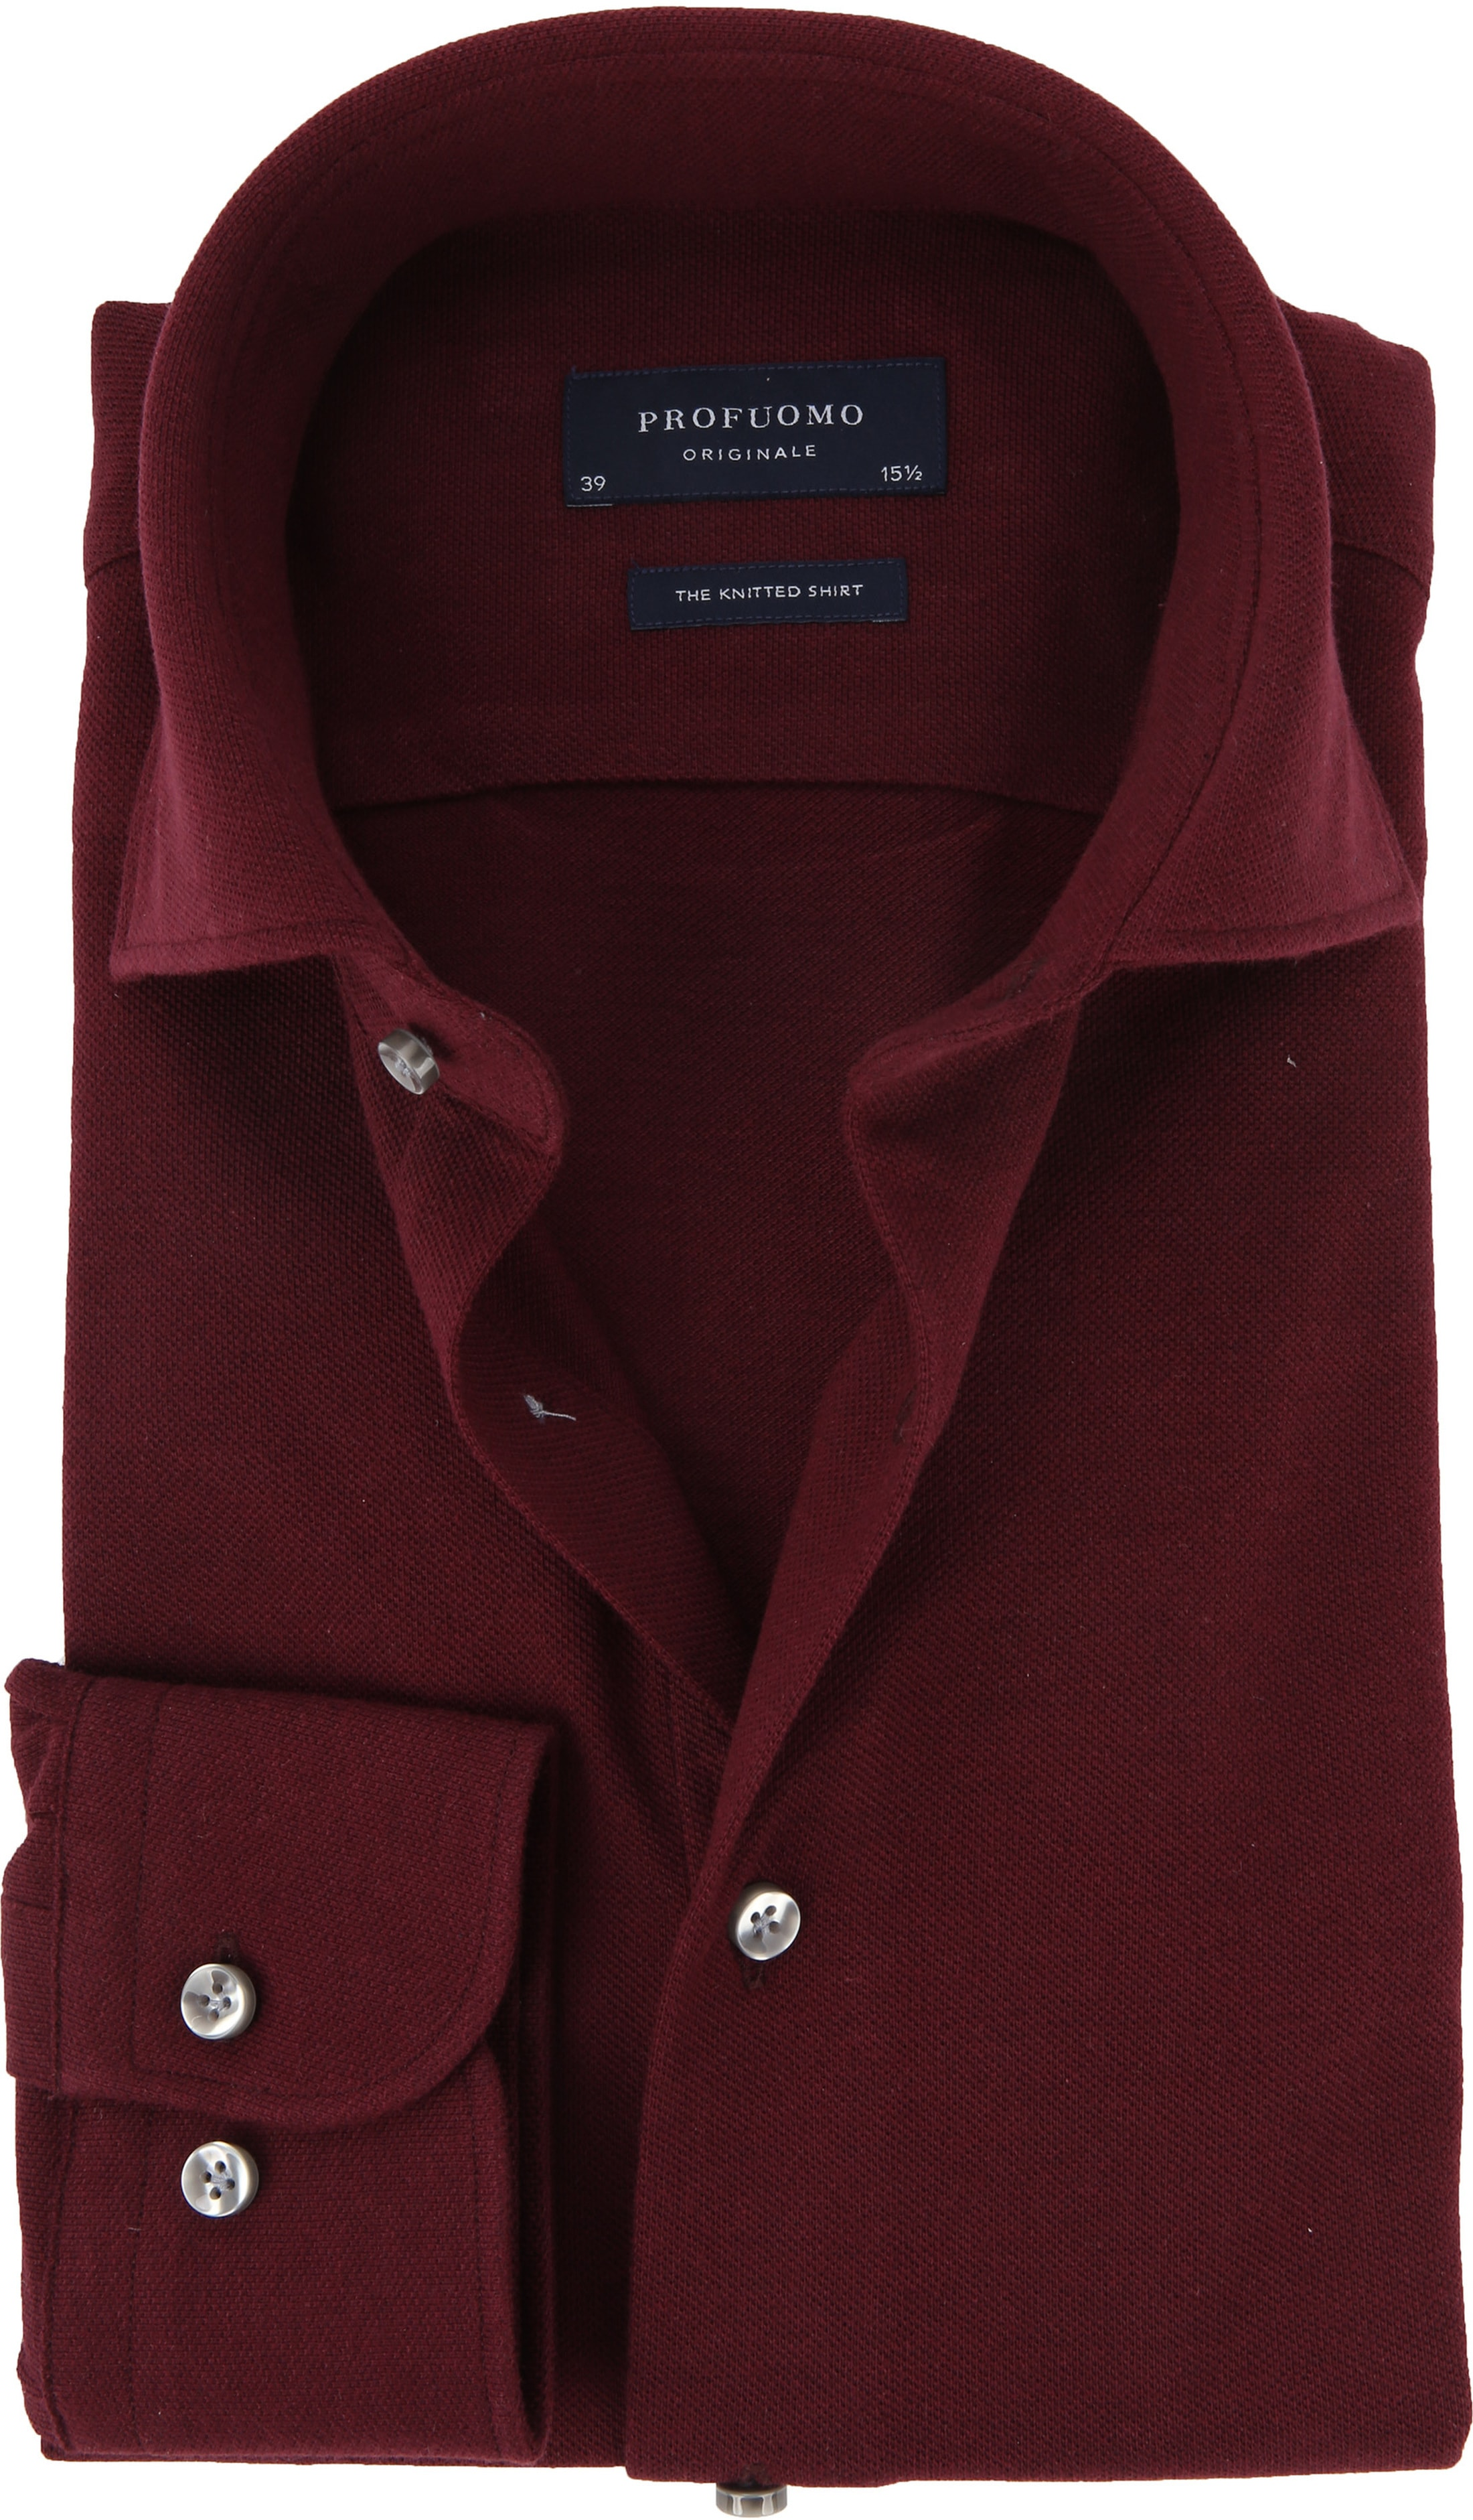 Profuomo Shirt Knitted Bordeaux foto 0